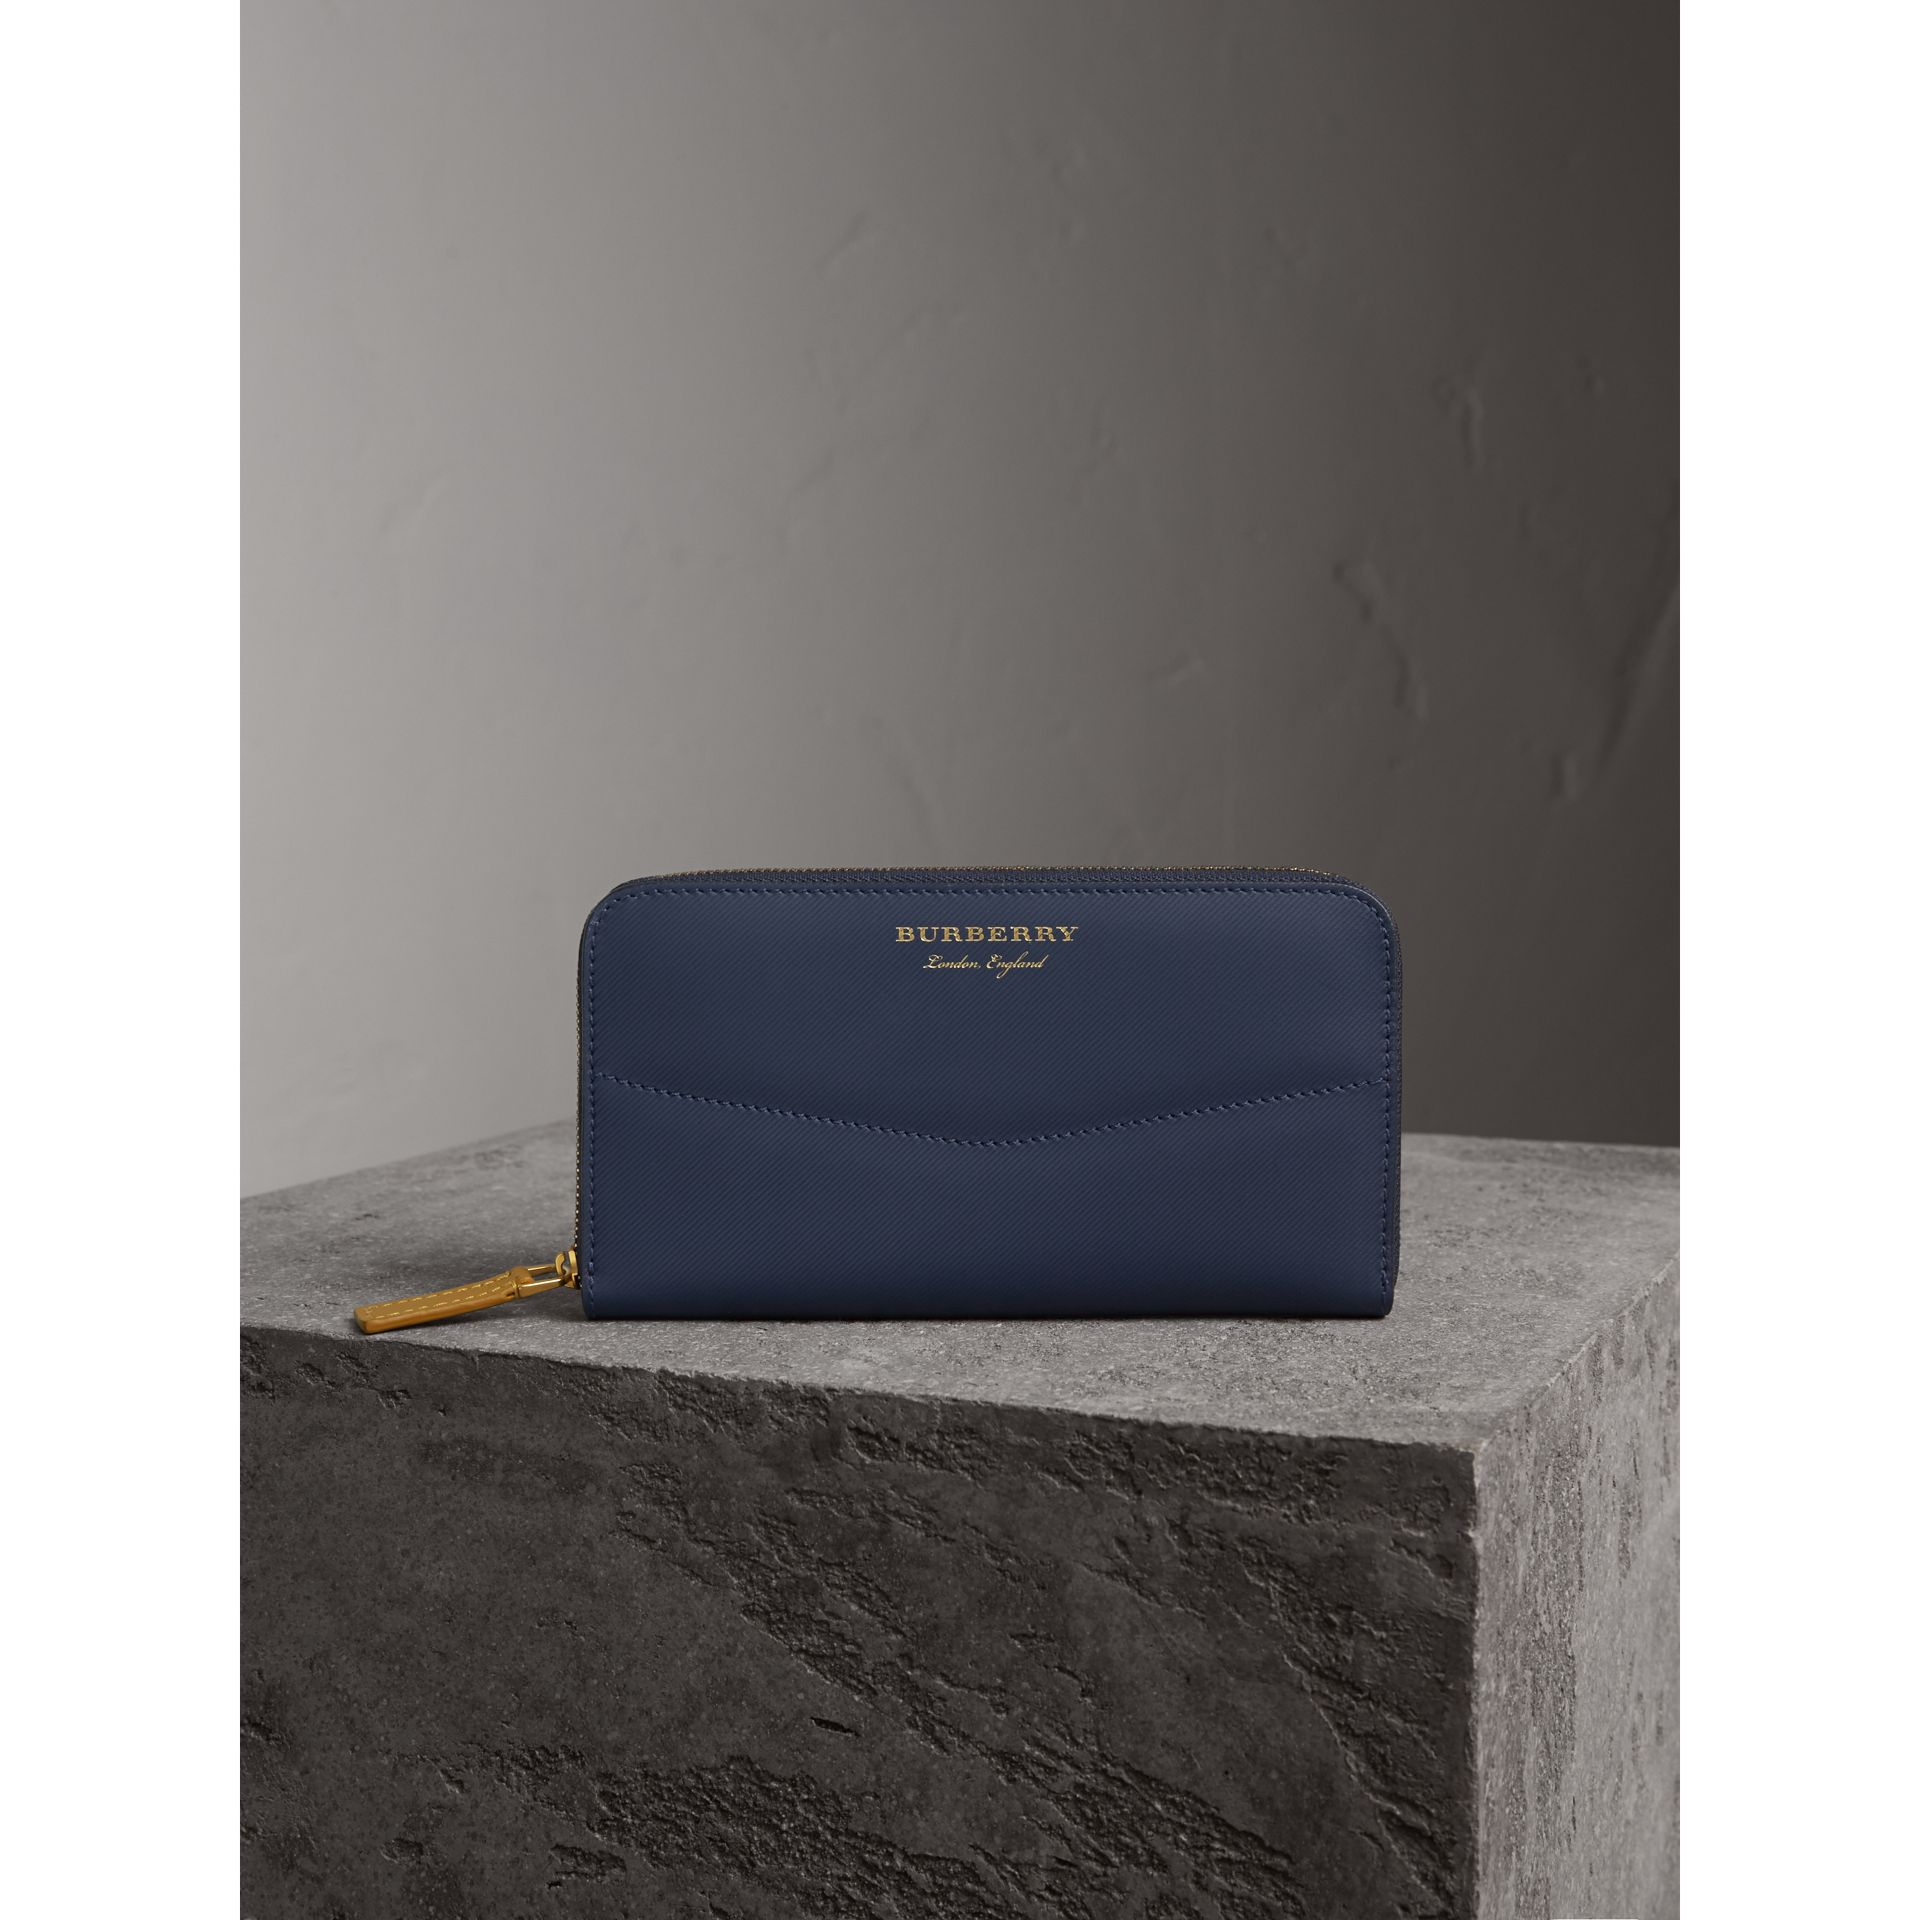 Two-tone Trench Leather Ziparound Wallet in Ink Blue/ochre Yellow - Women | Burberry Singapore - gallery image 5